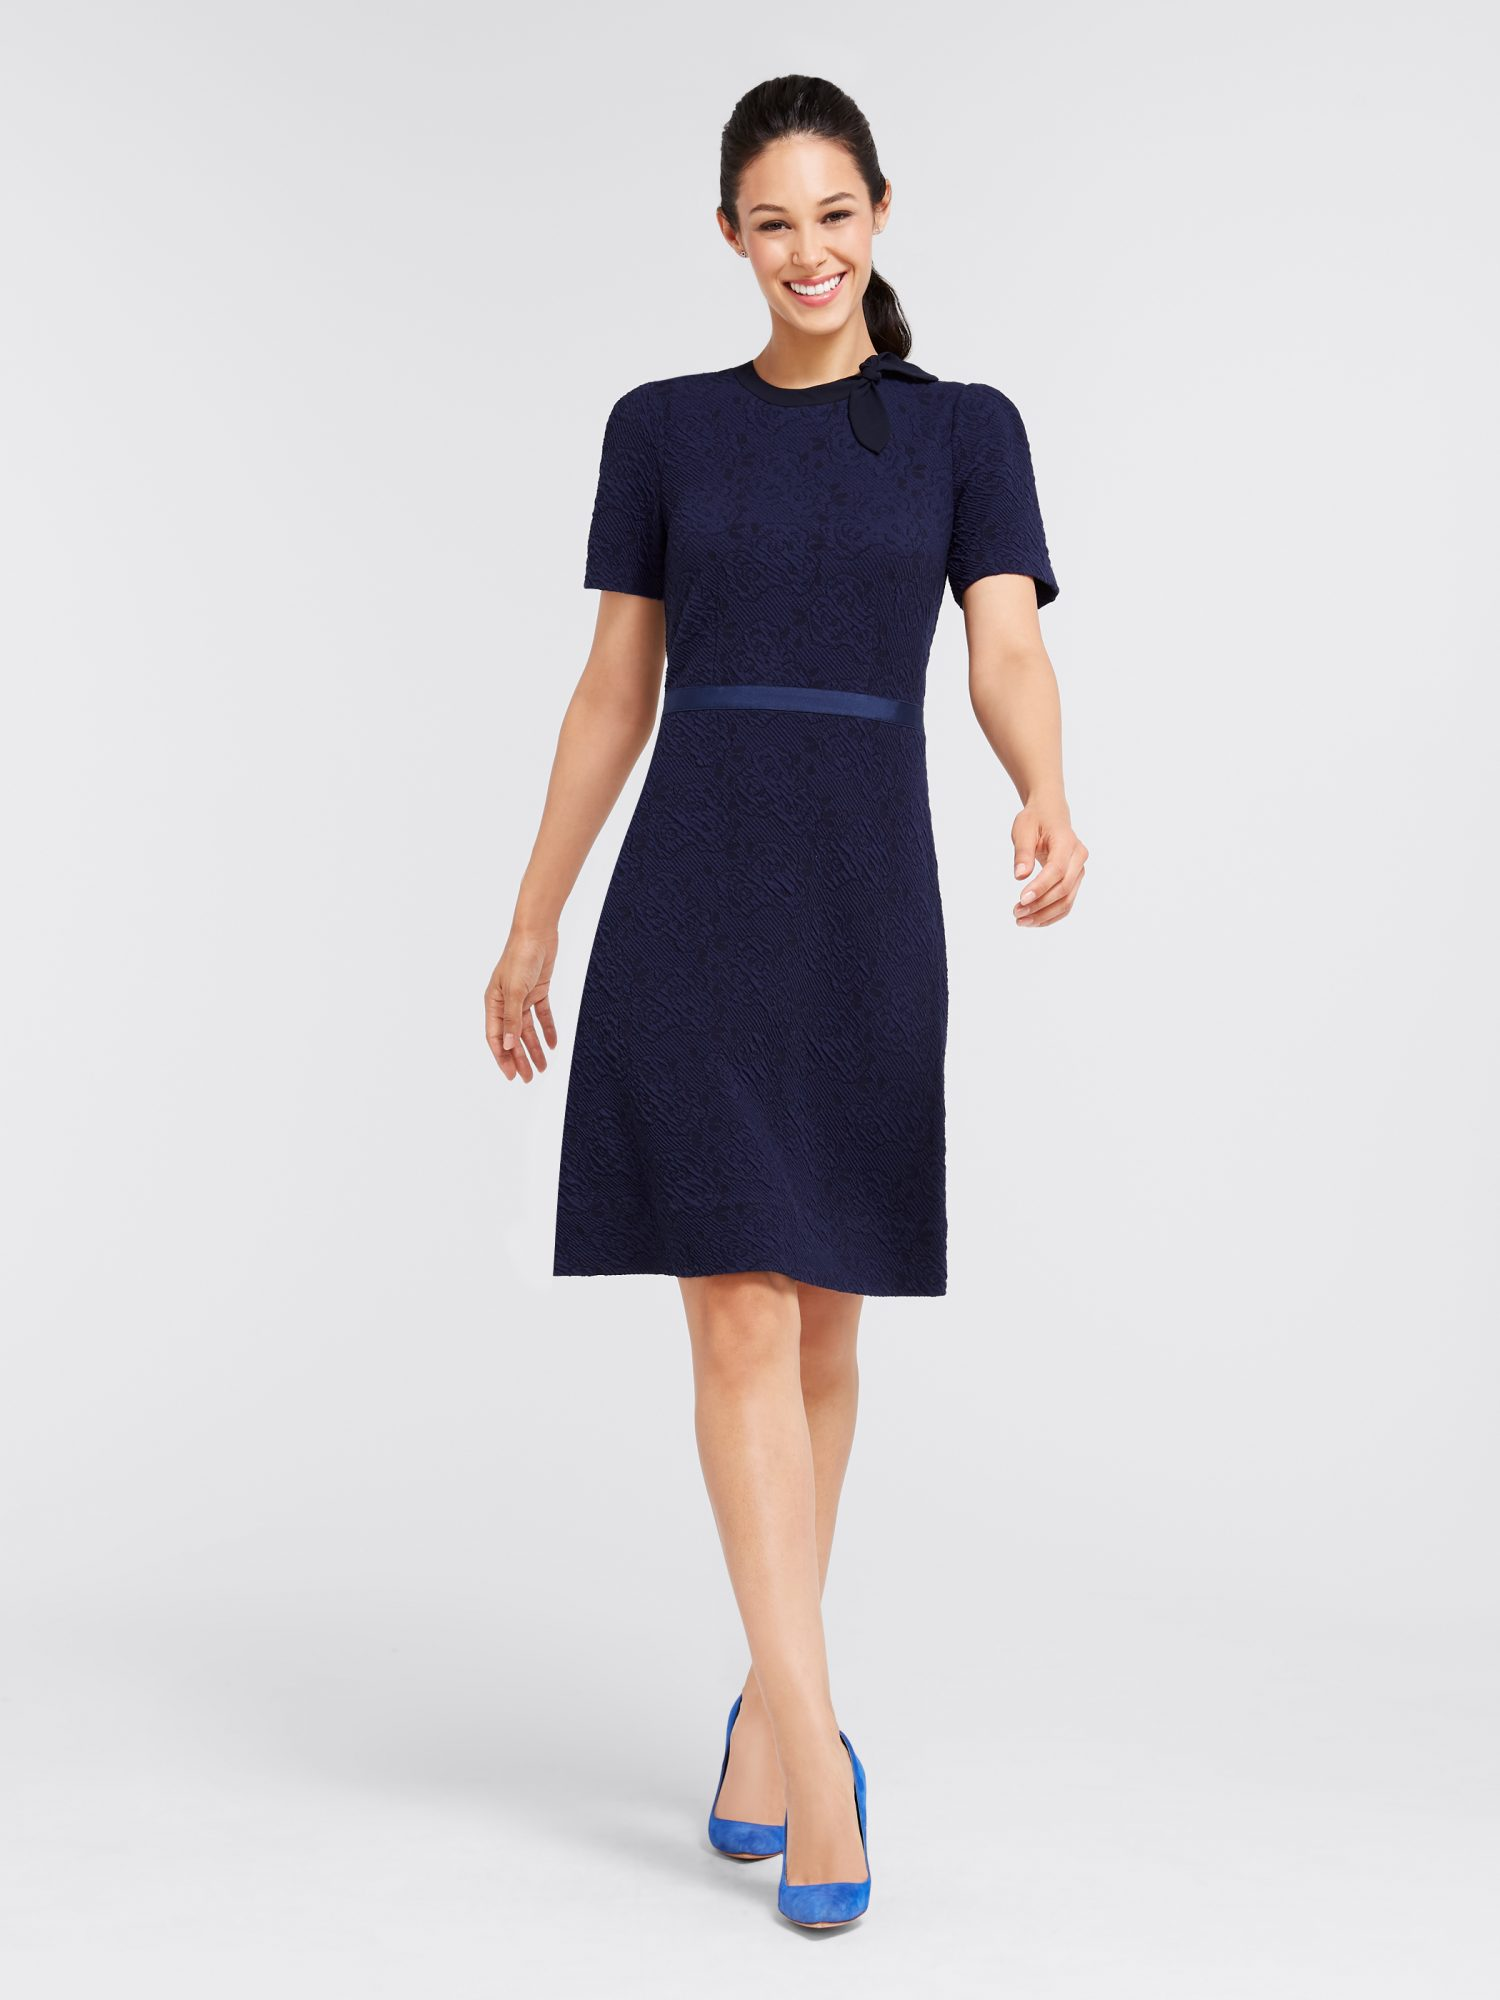 Floral Knit Mary Wills Dress